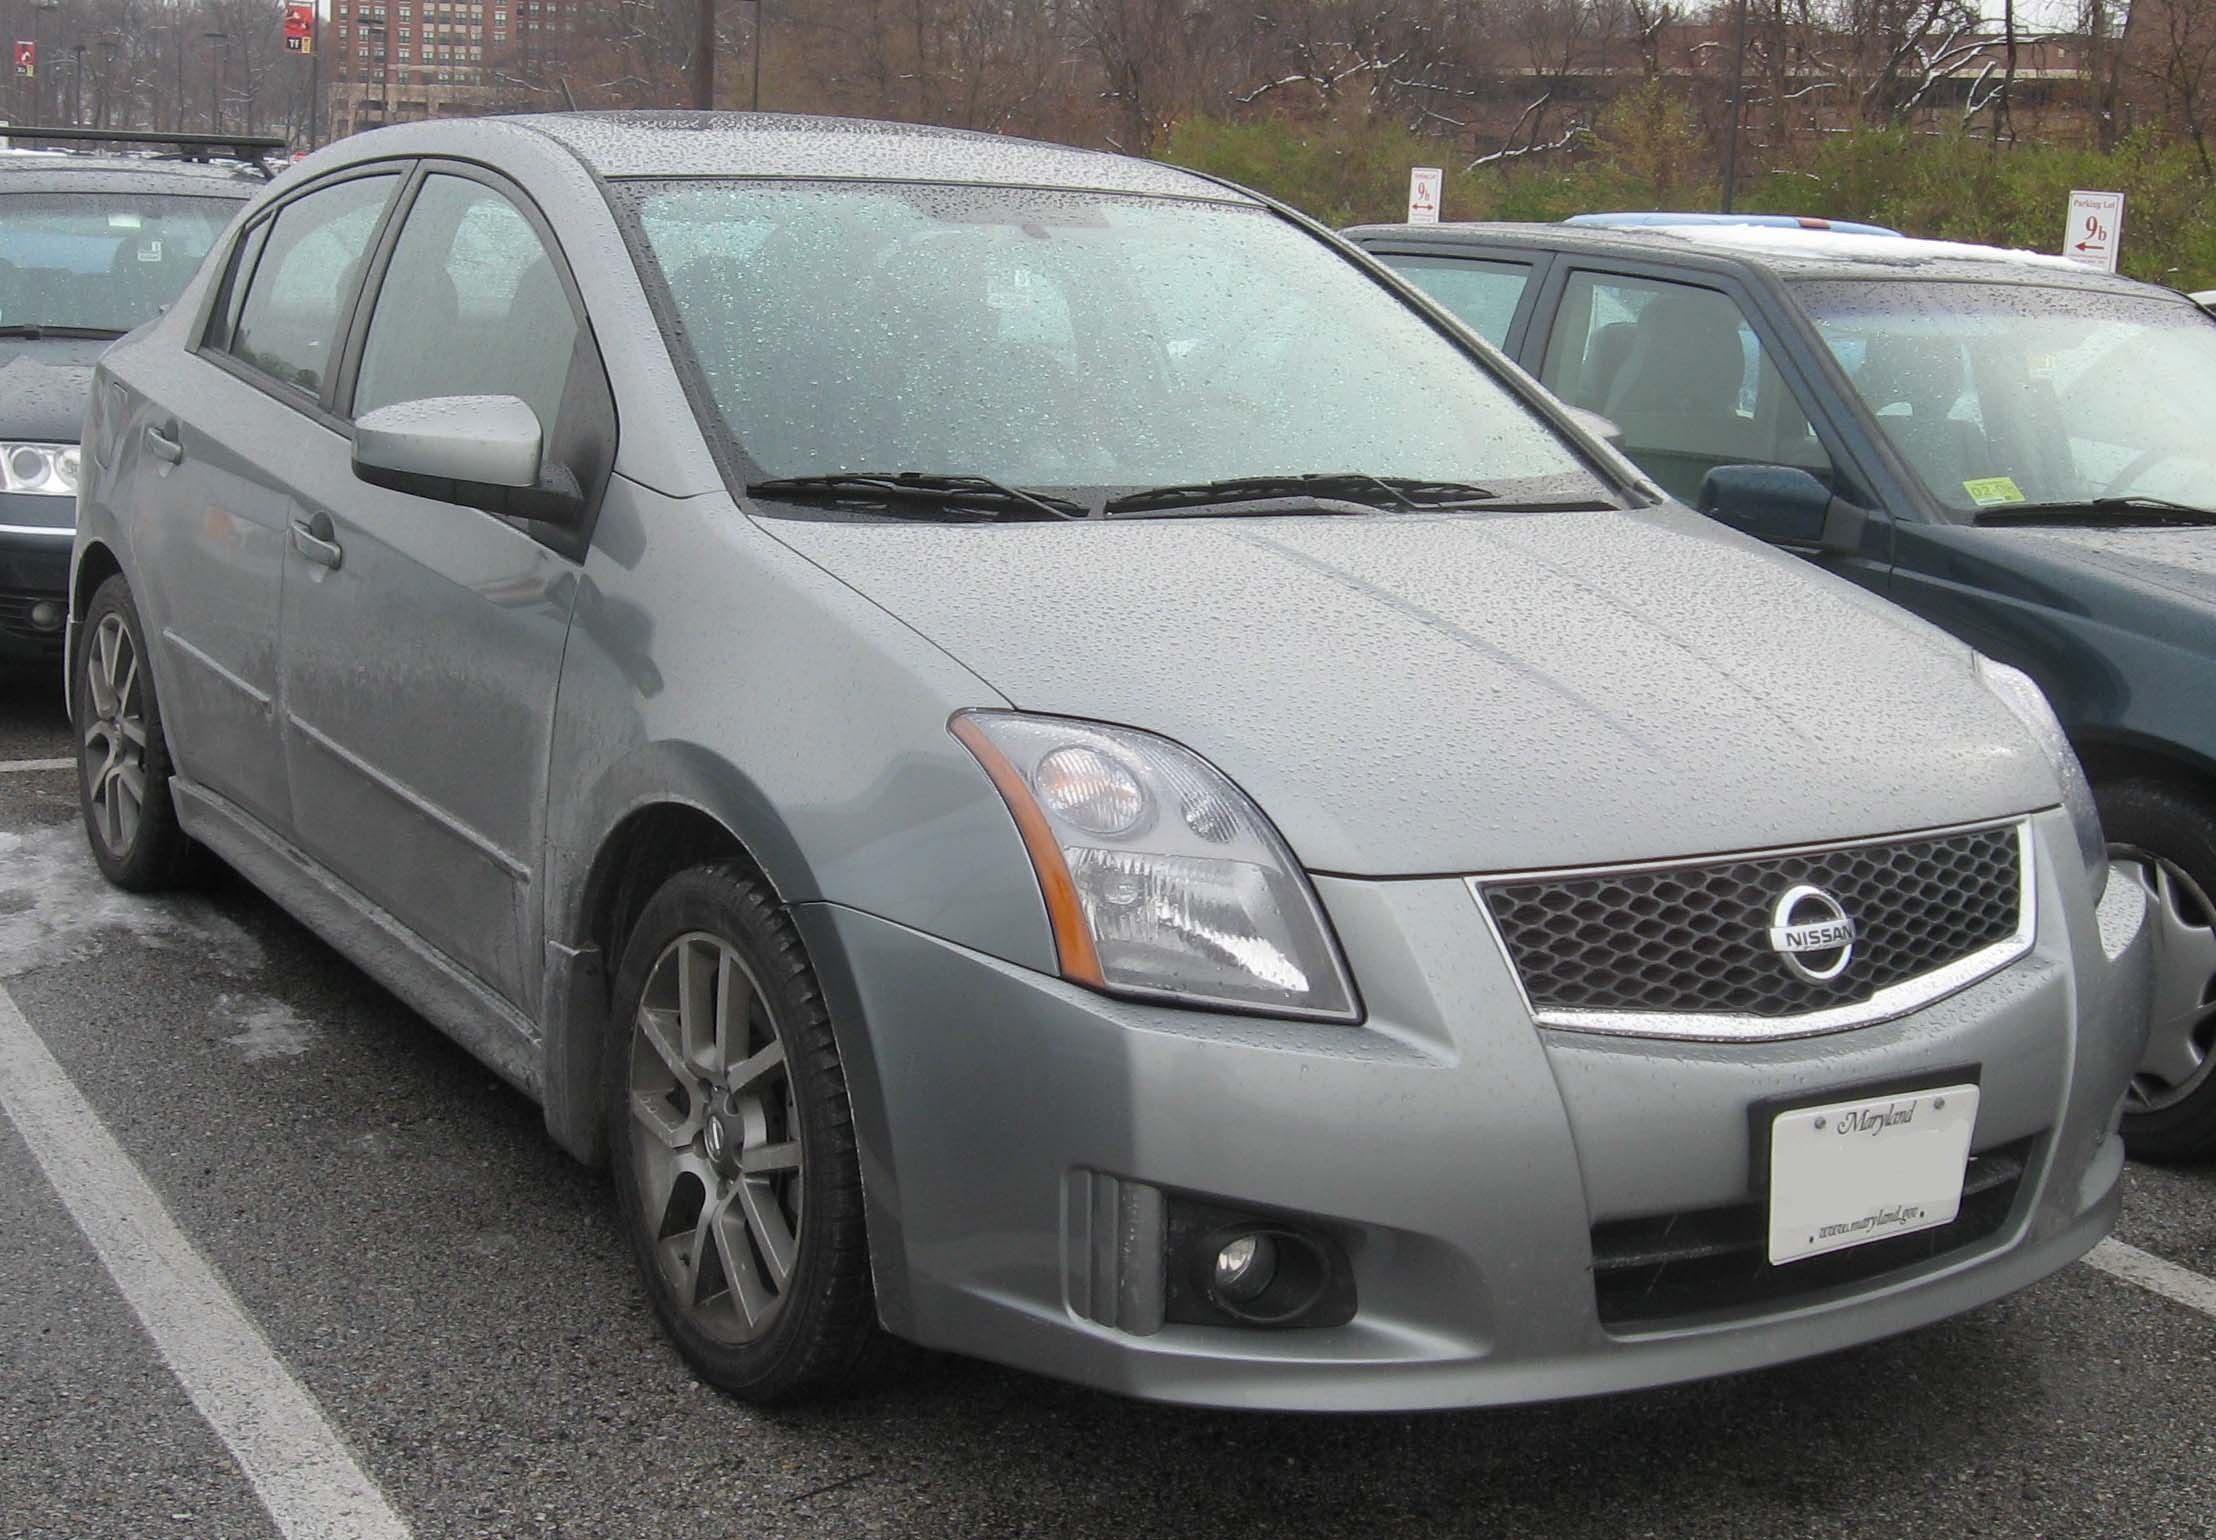 2012 nissan sentra vi pictures information and specs auto. Black Bedroom Furniture Sets. Home Design Ideas